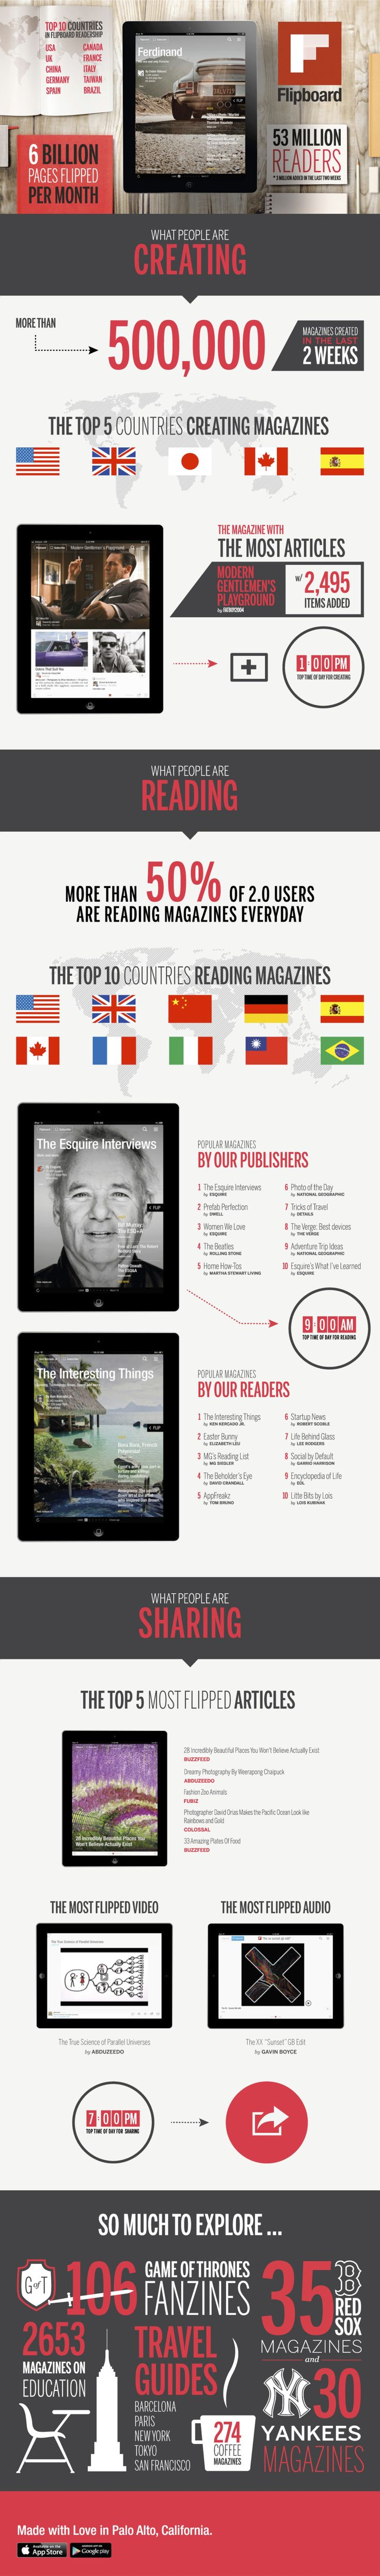 How Social Media Users Are Curating Publications On Flipboard. A Visual Look At Mobile Apps and Technology to visualize our digital worlds into magazine.